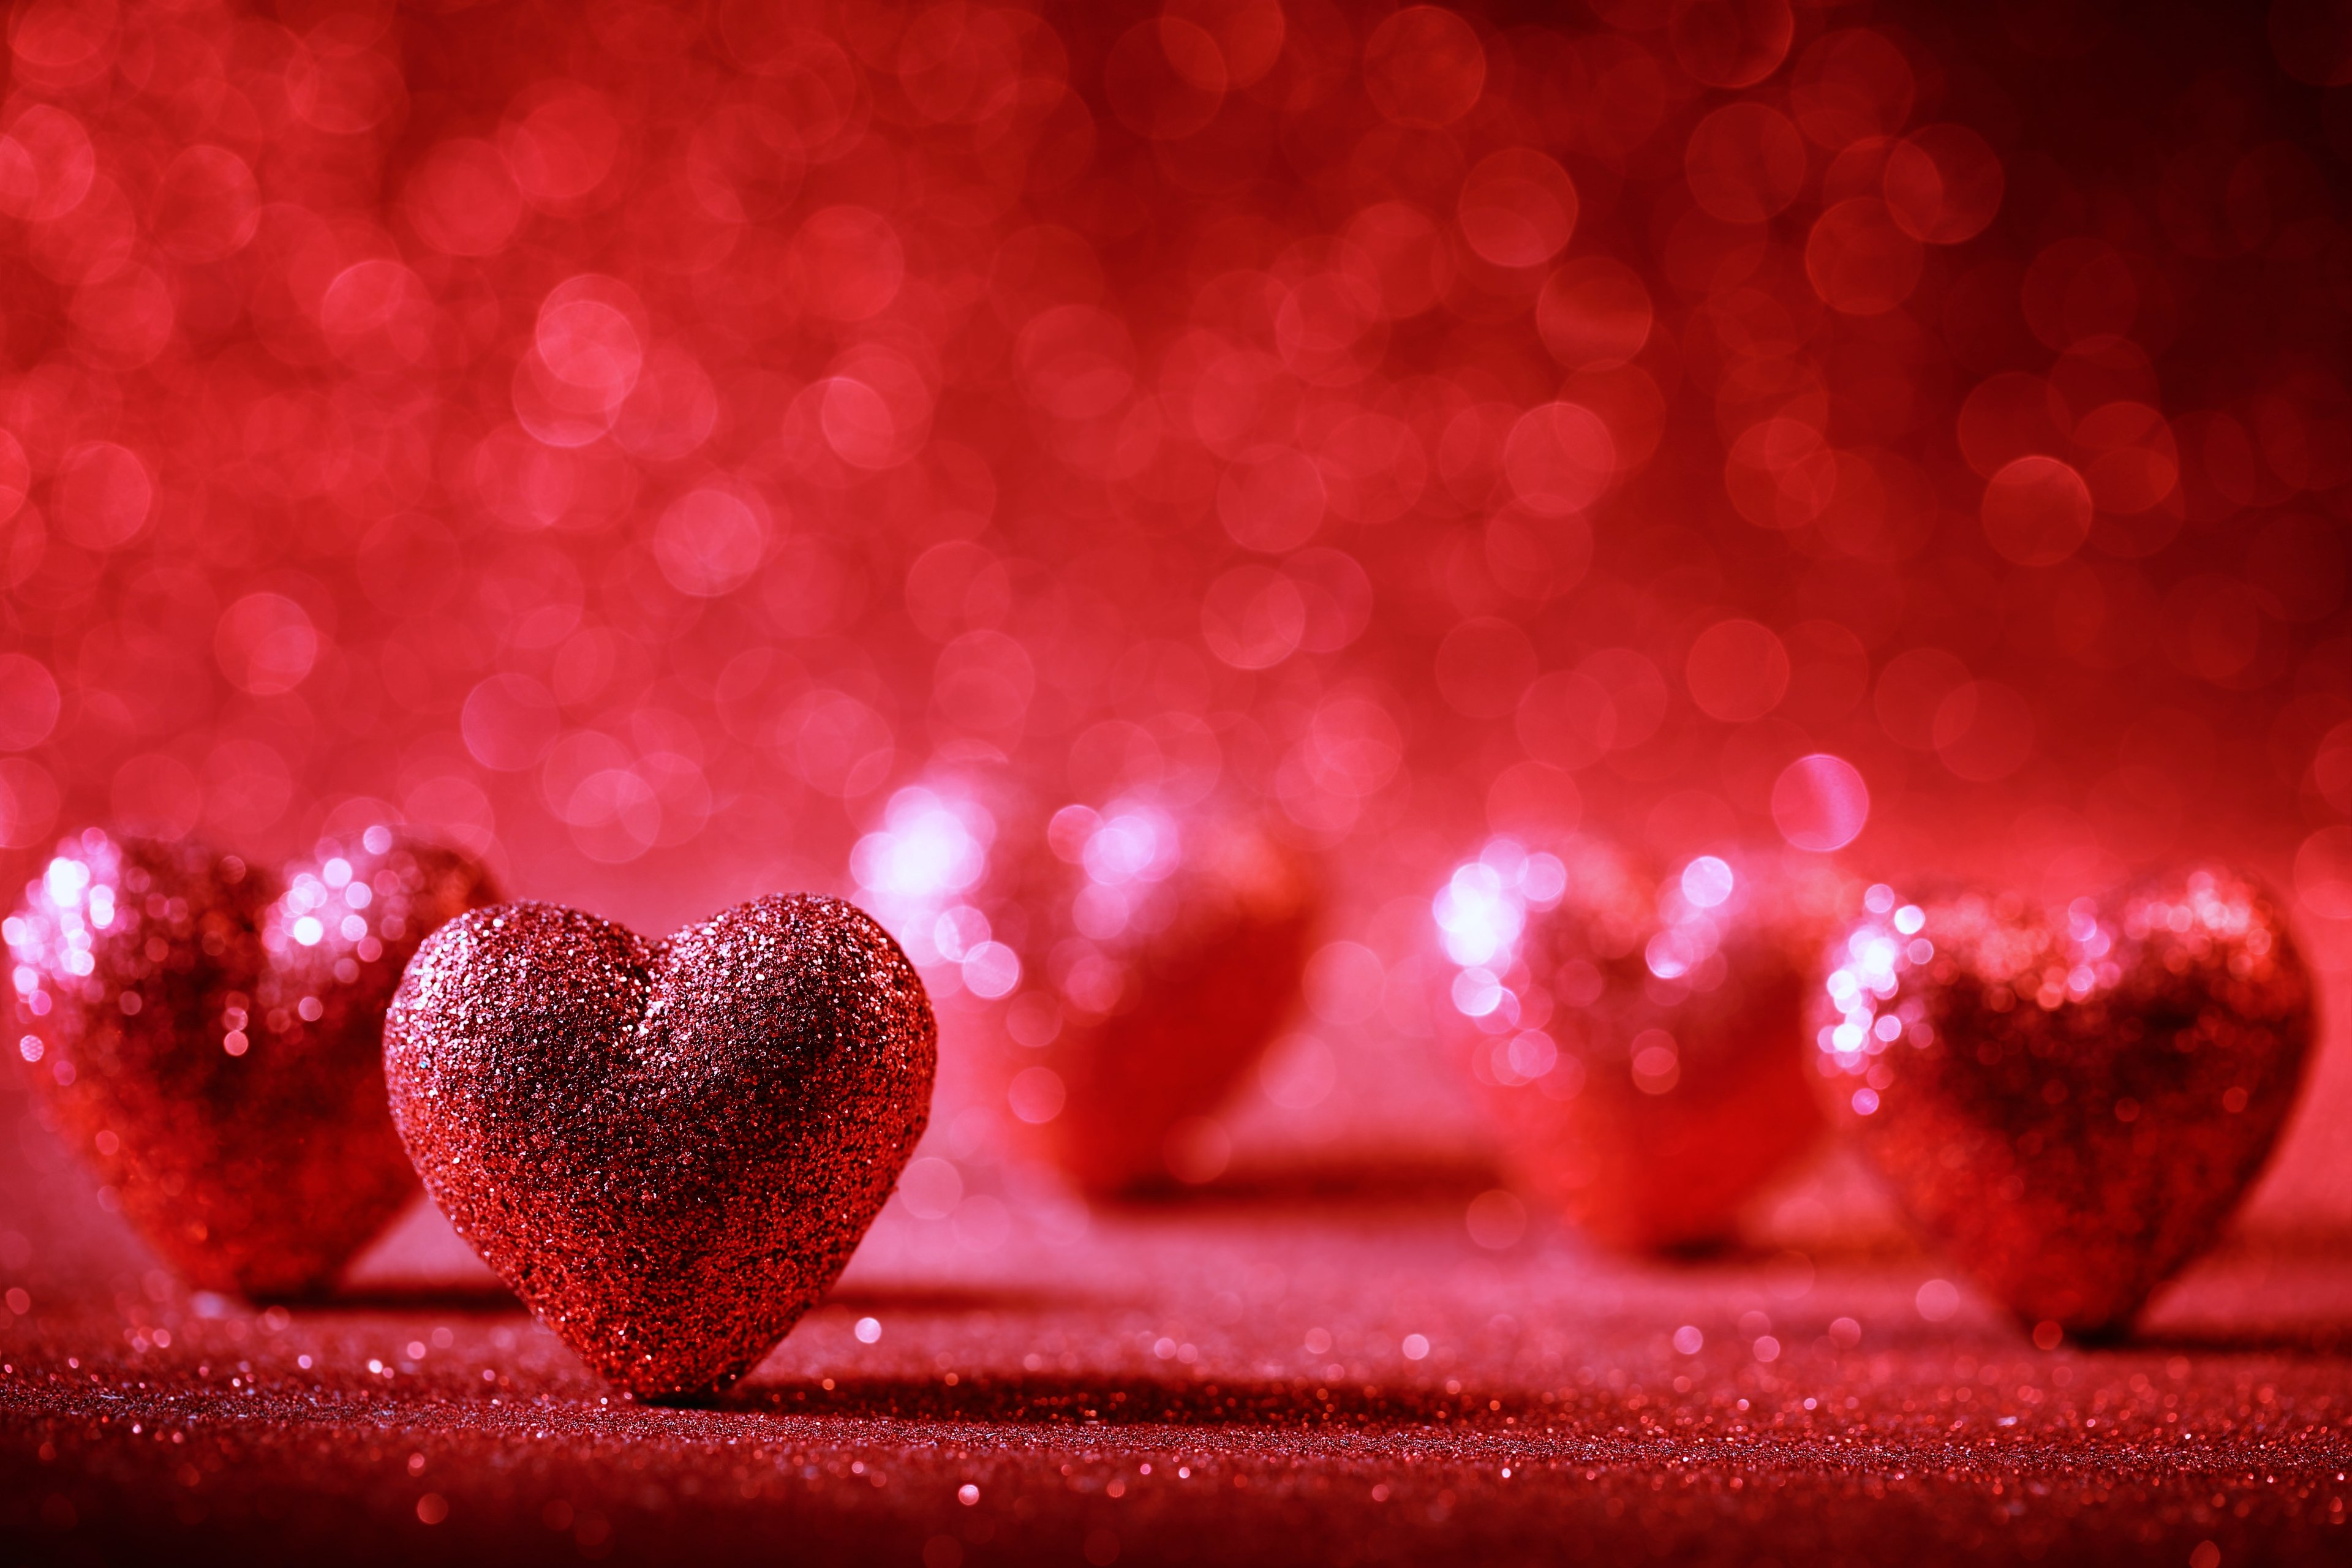 hearts red love romance emotions backgroung wallpapers beauty